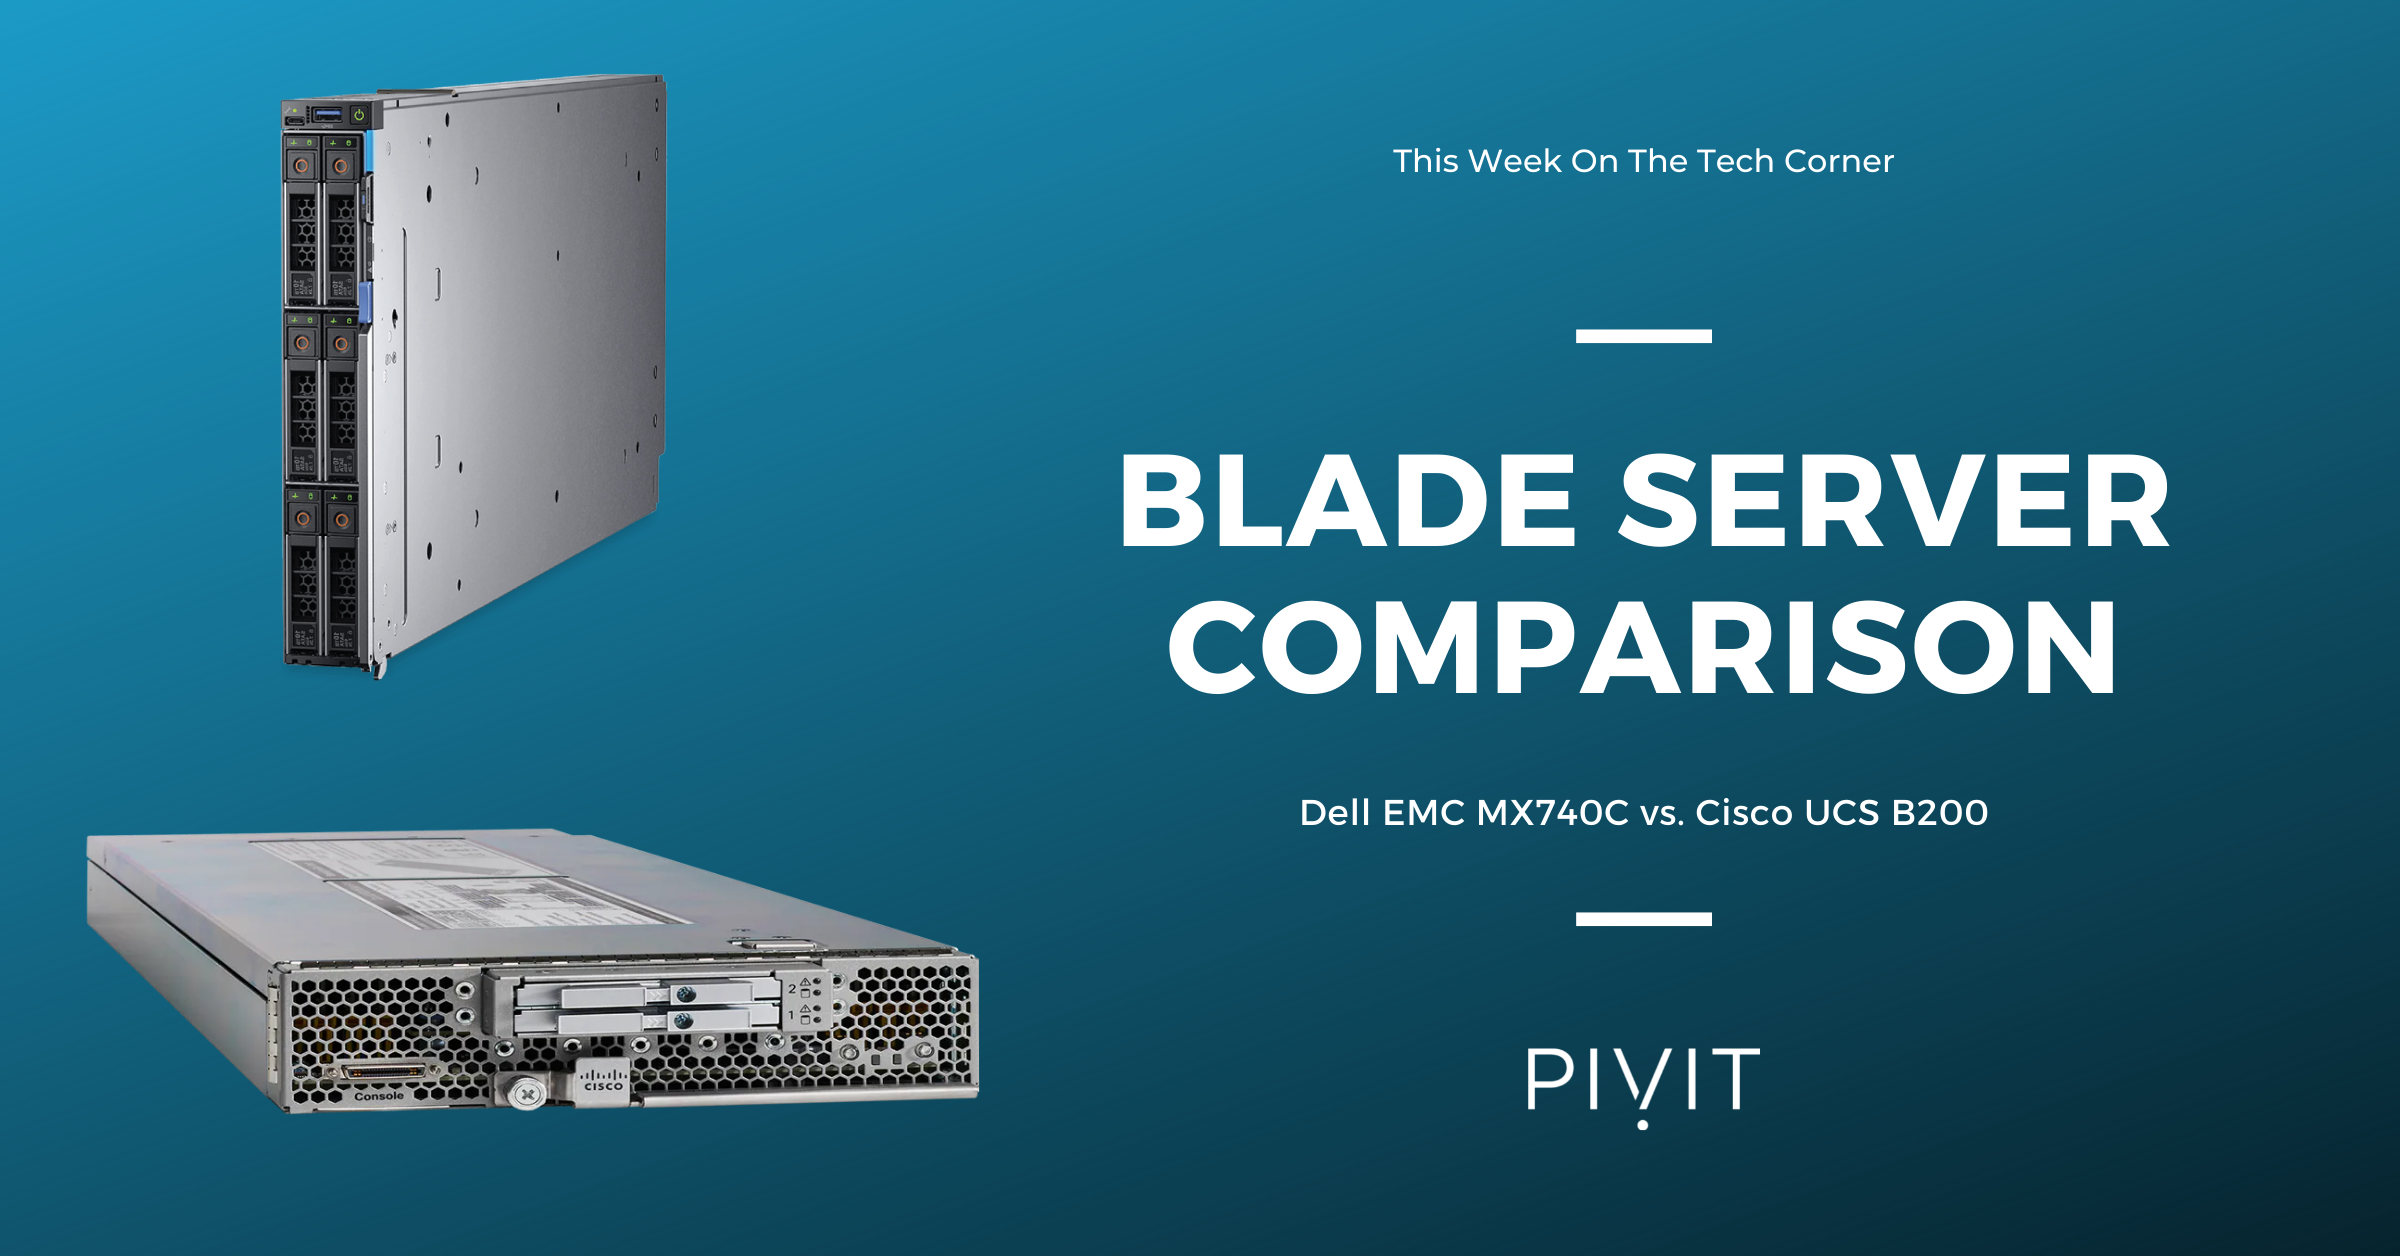 High-End Blade Server Comparison of the Dell EMC MX740C and the Cisco UCS B200